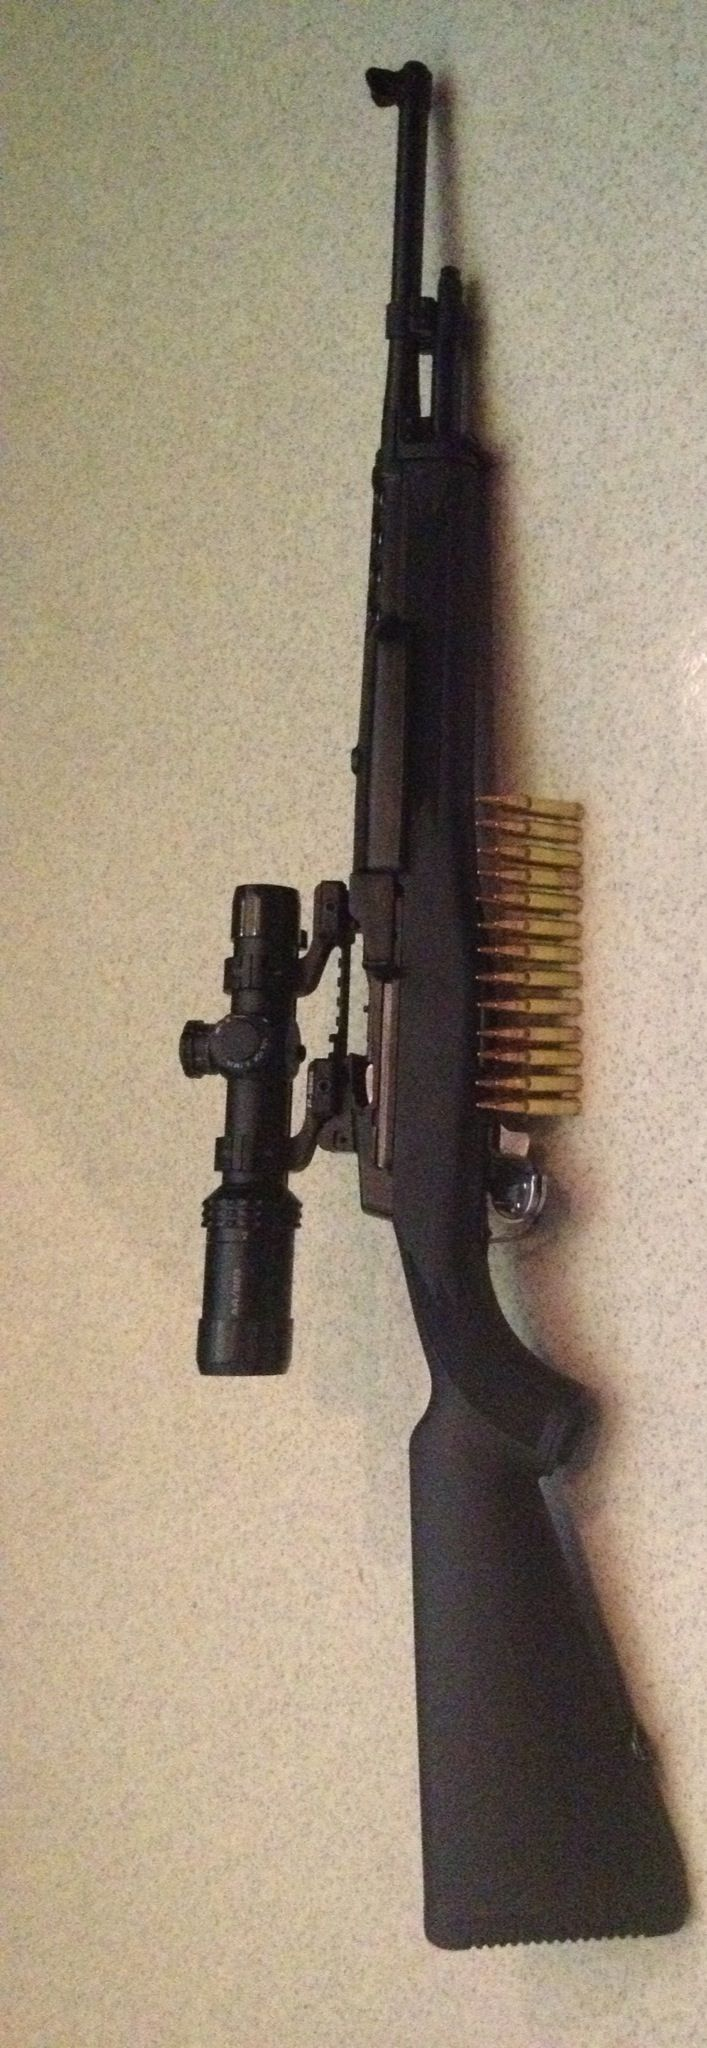 Ruger Mini 14    Socom Accu-Strut and Bushnell Scope with P Nikon mounts